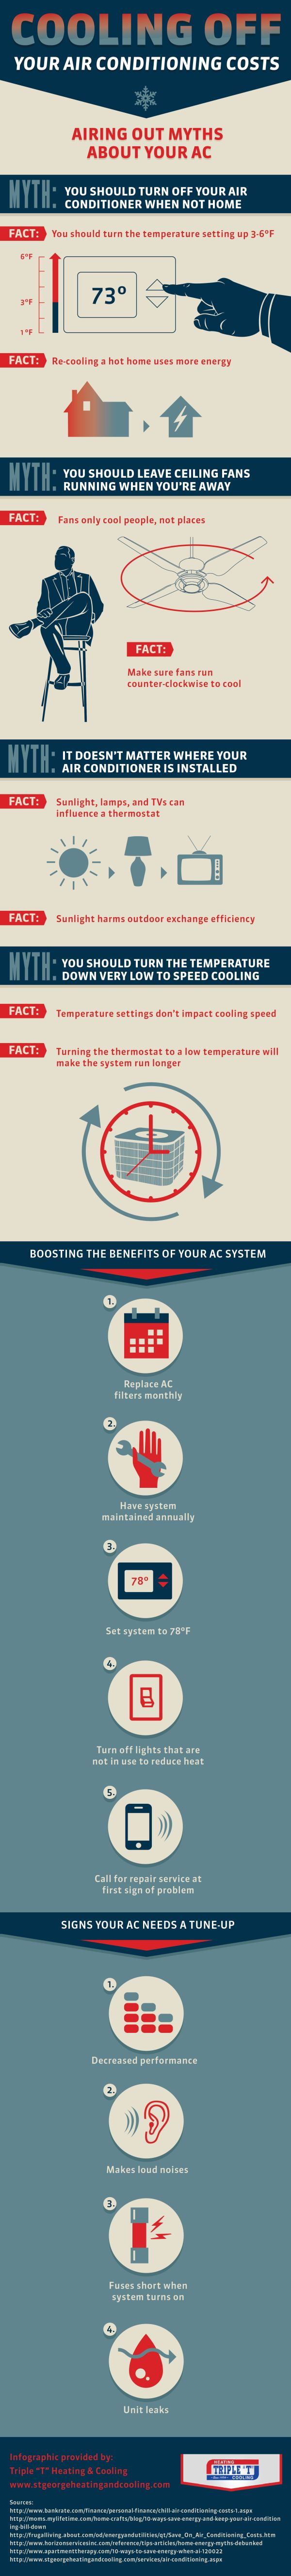 Replacing the air conditioner's filters once a month can help you boost the effectiveness of this system. http://www.brewercommercialservices.com/